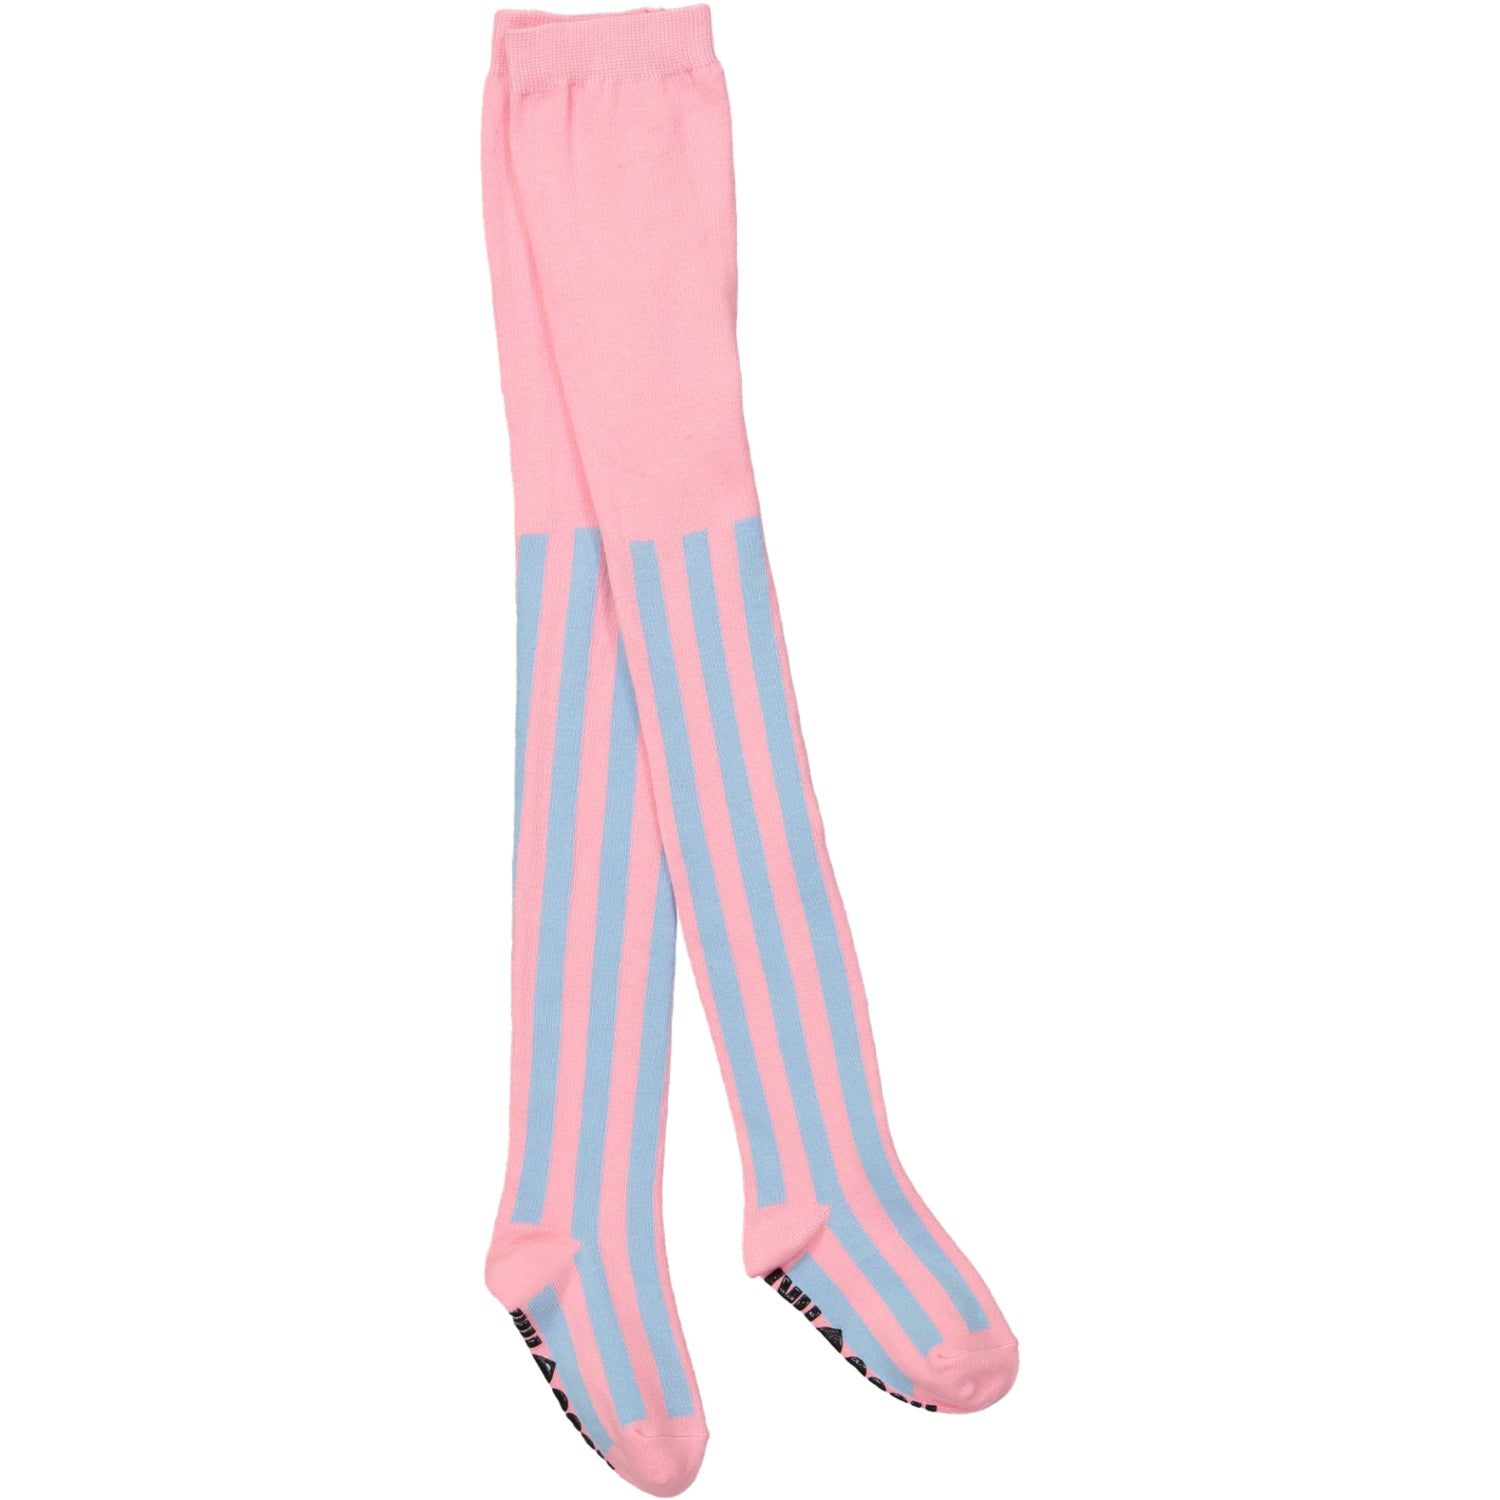 Cotton Candy Tights